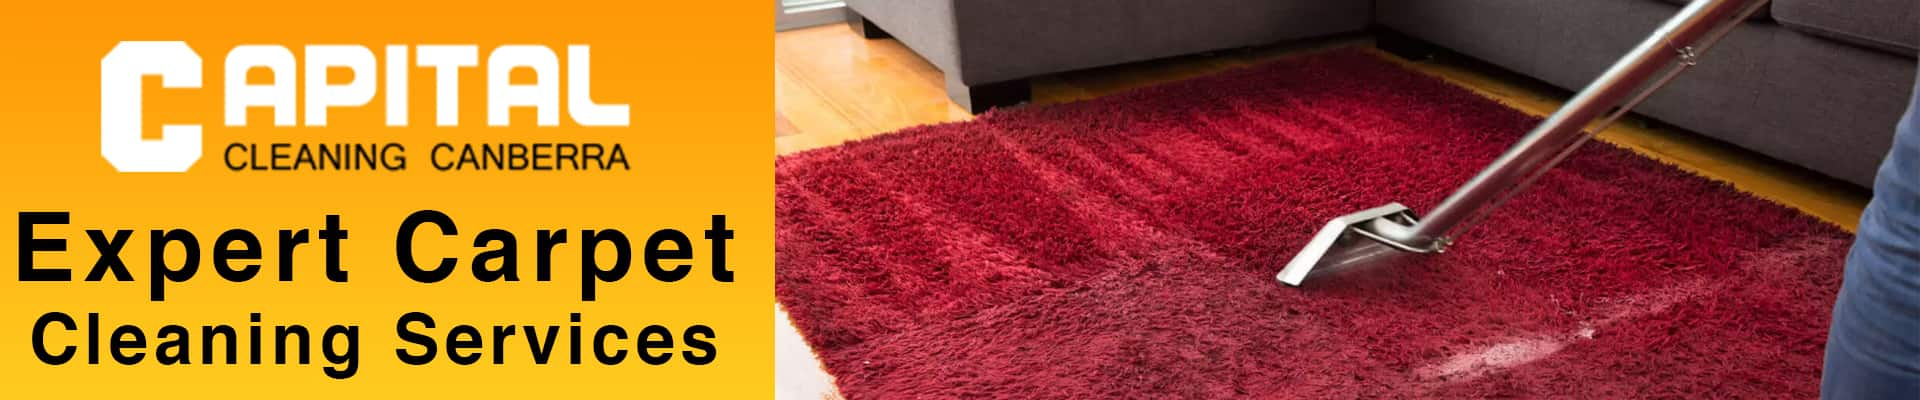 Expert Carpet Cleaning Services Yarralumla